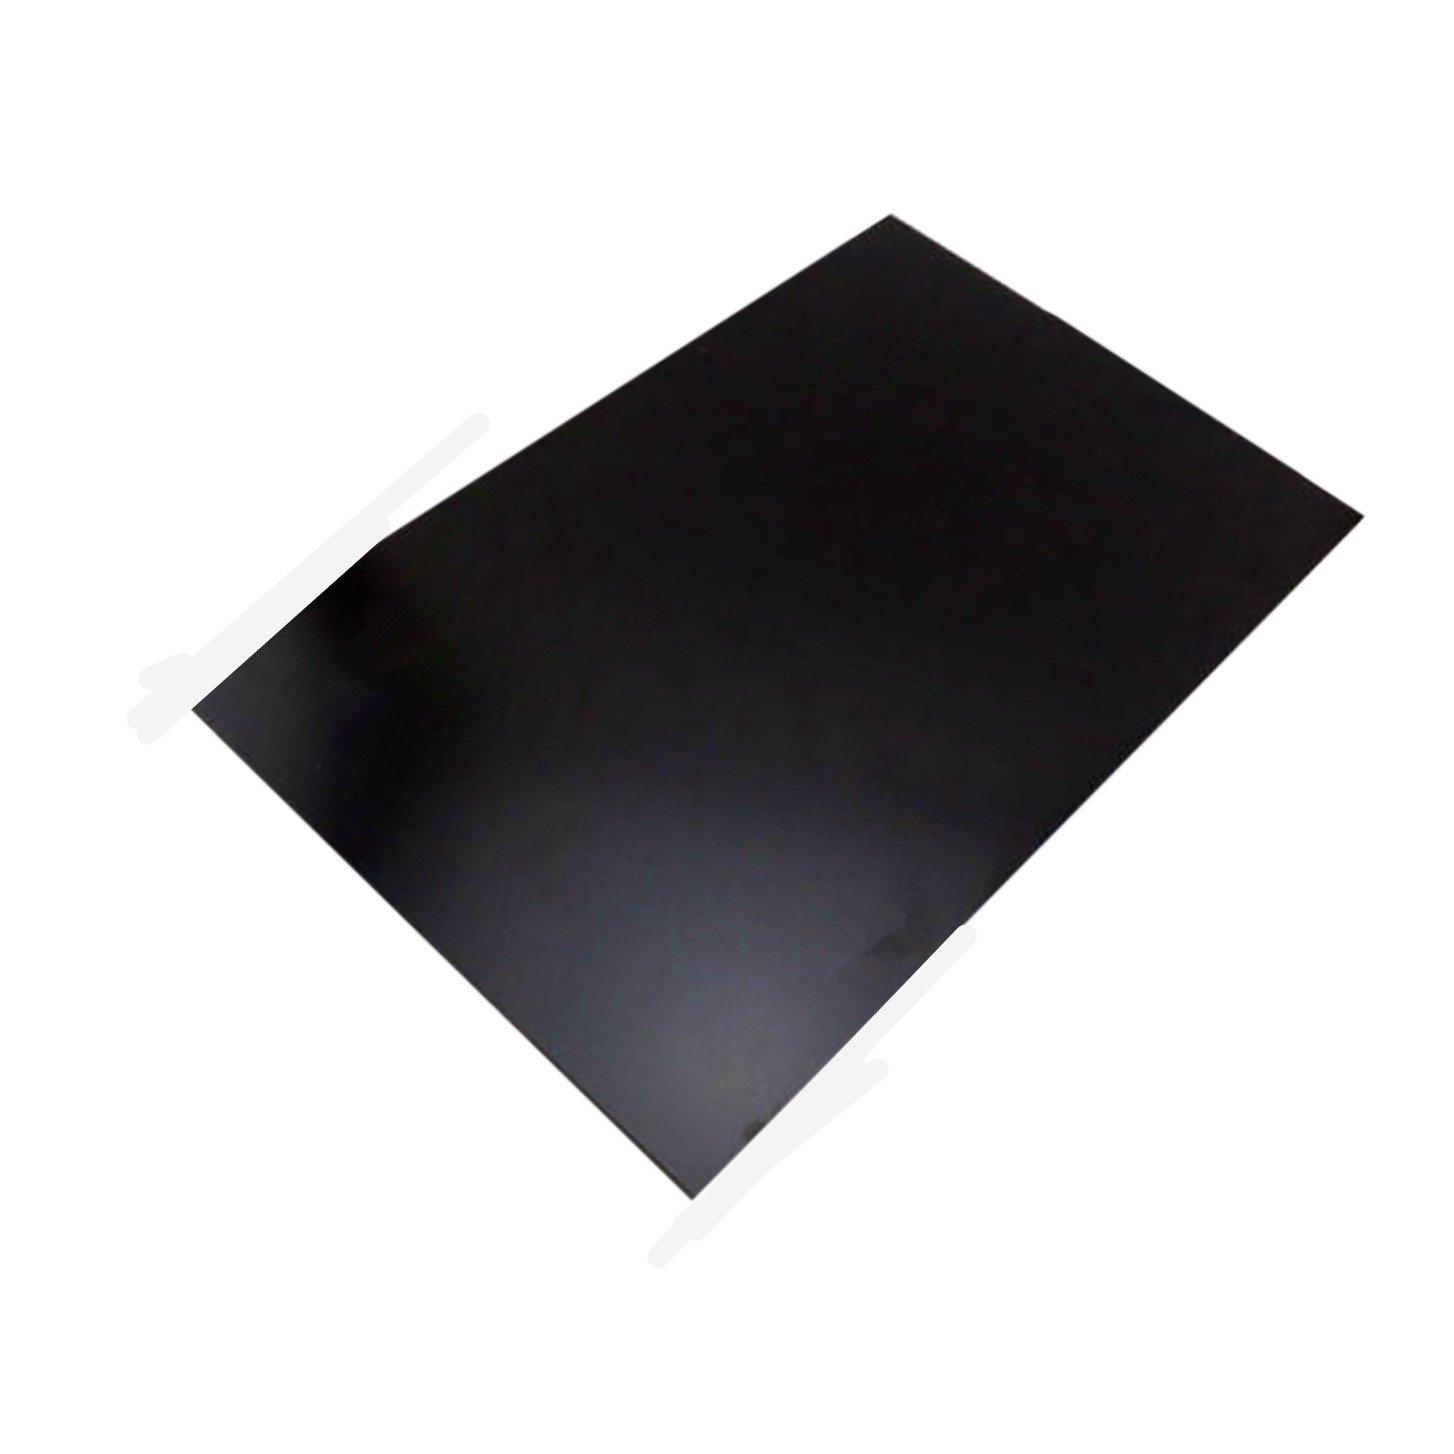 1Pc Durable Black ABS Styrene Plastic Flat Sheet Electrical Insulation Plate 0.5*100*100mm/0.5*200*200mm For Electrical Fields